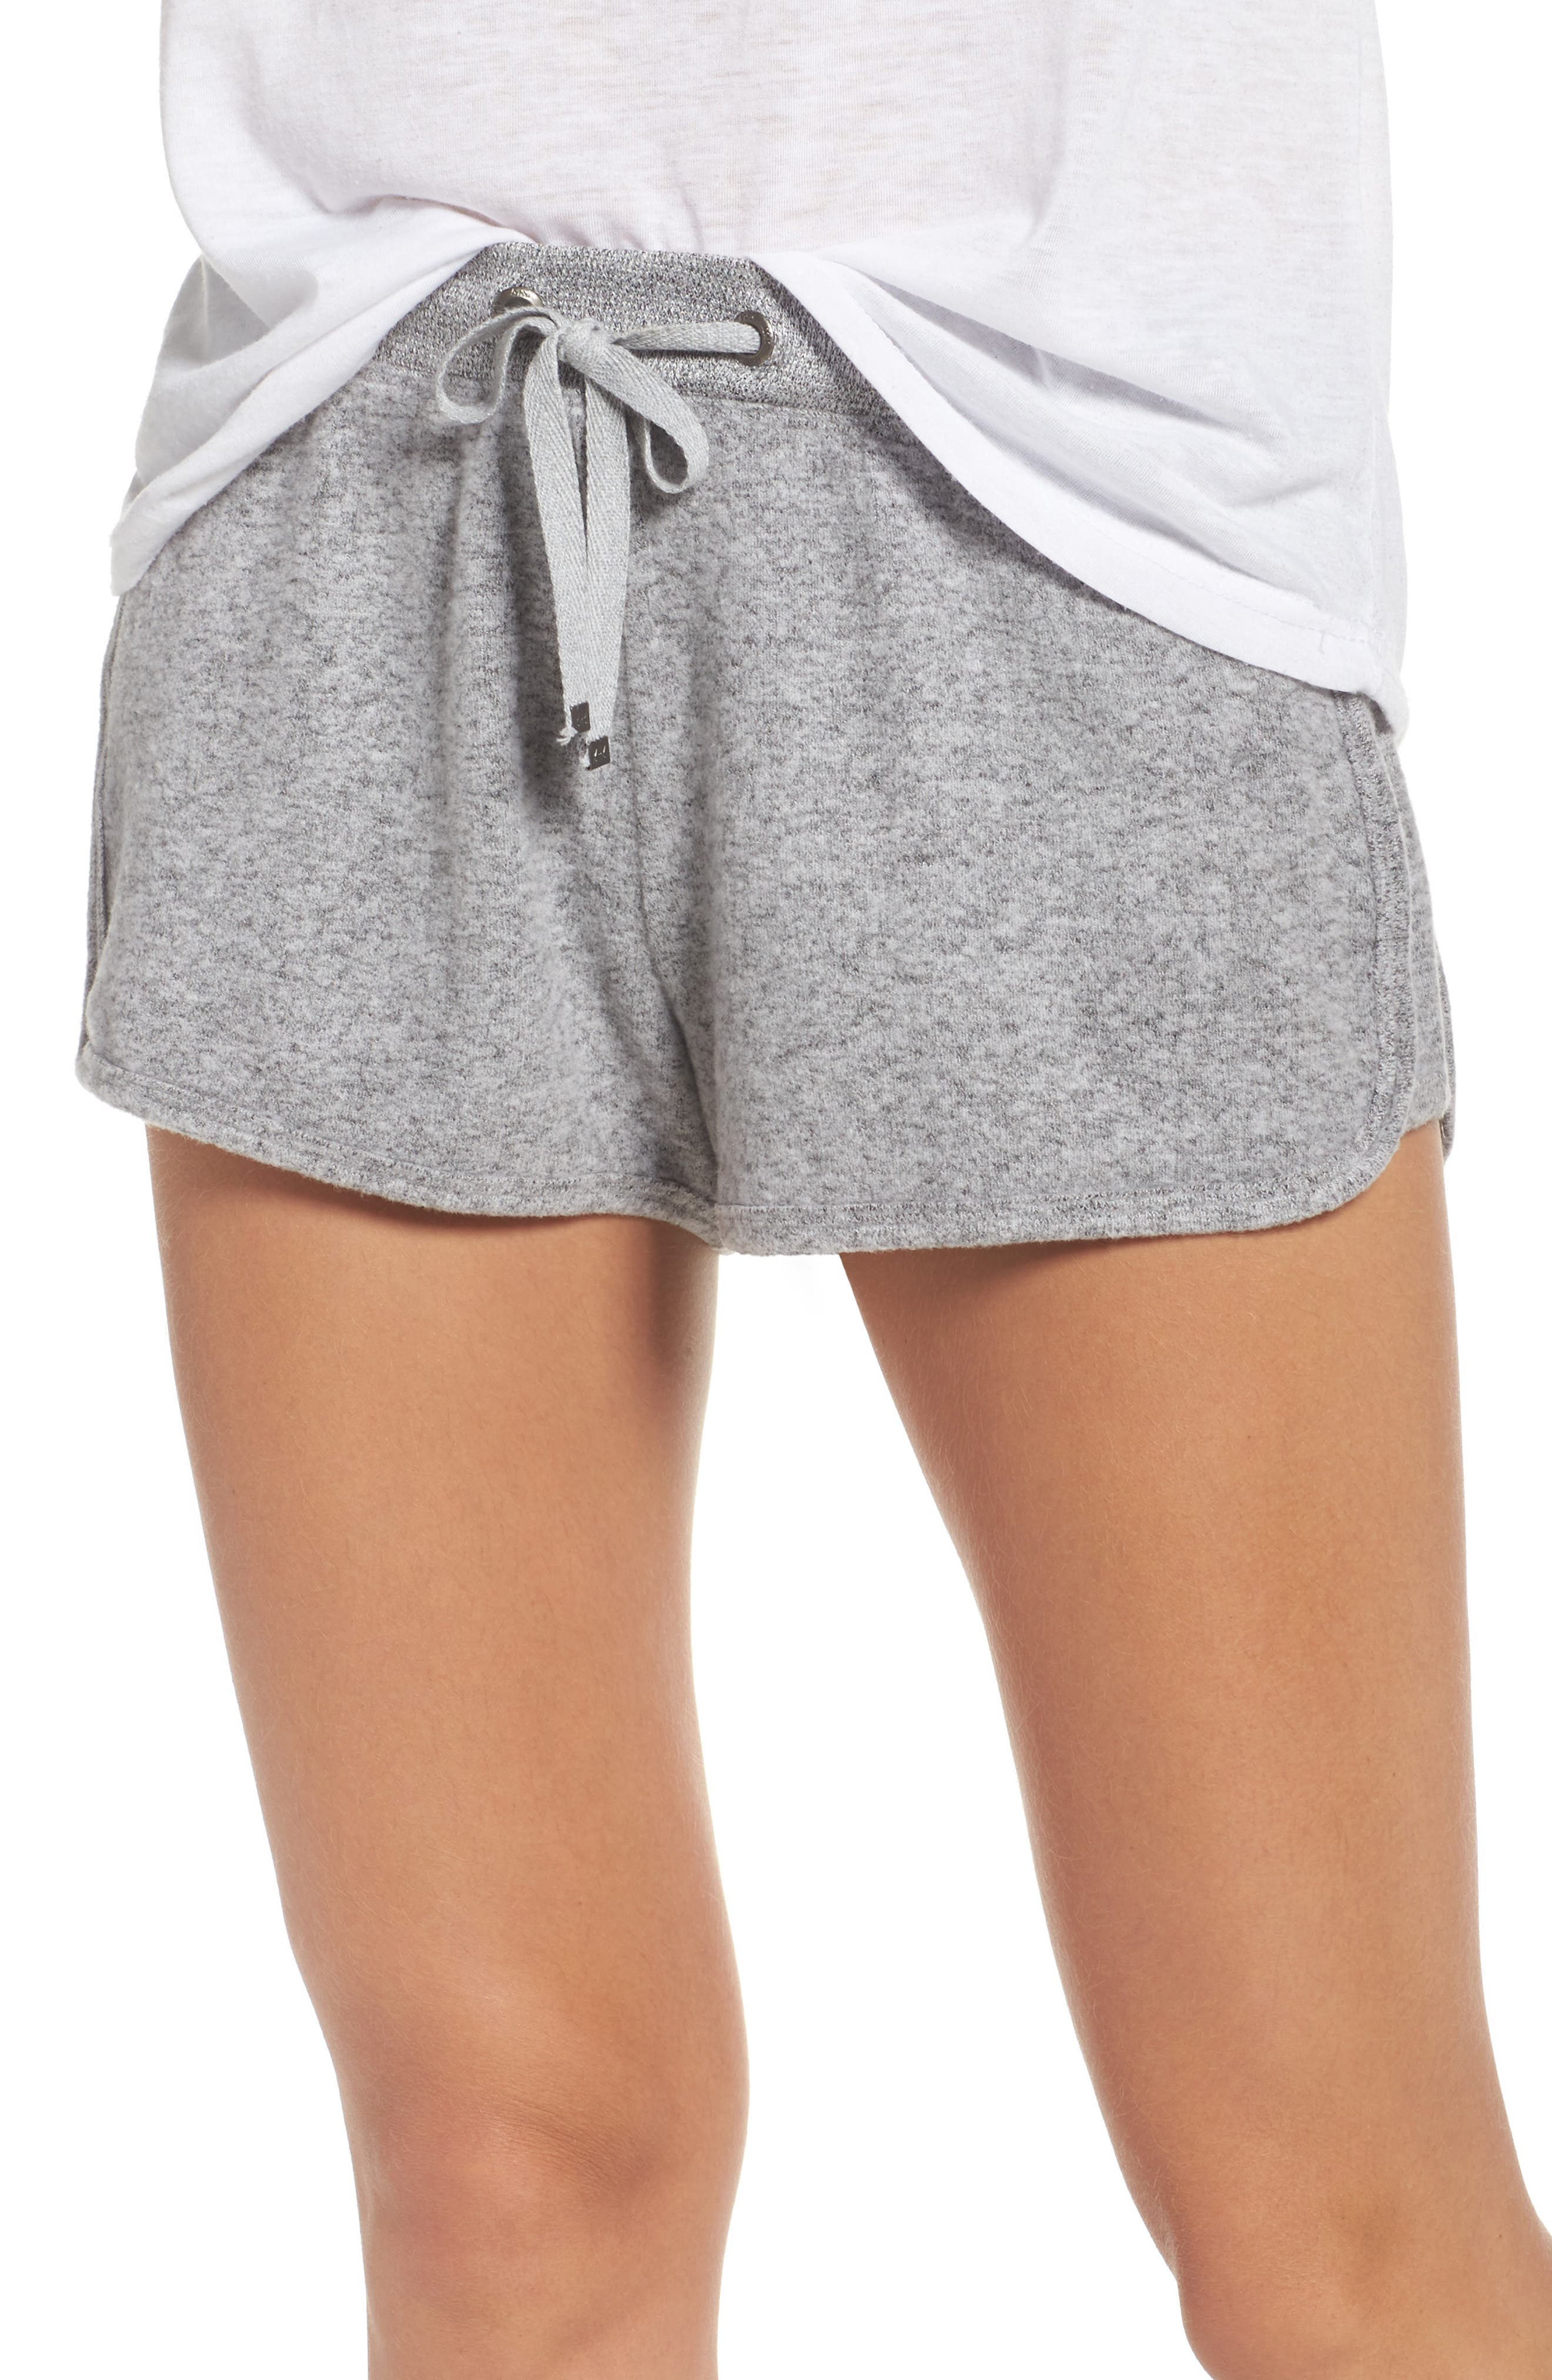 Bring It On Lounge Shorts,                         Main,                         color, Grey Flannel Marl